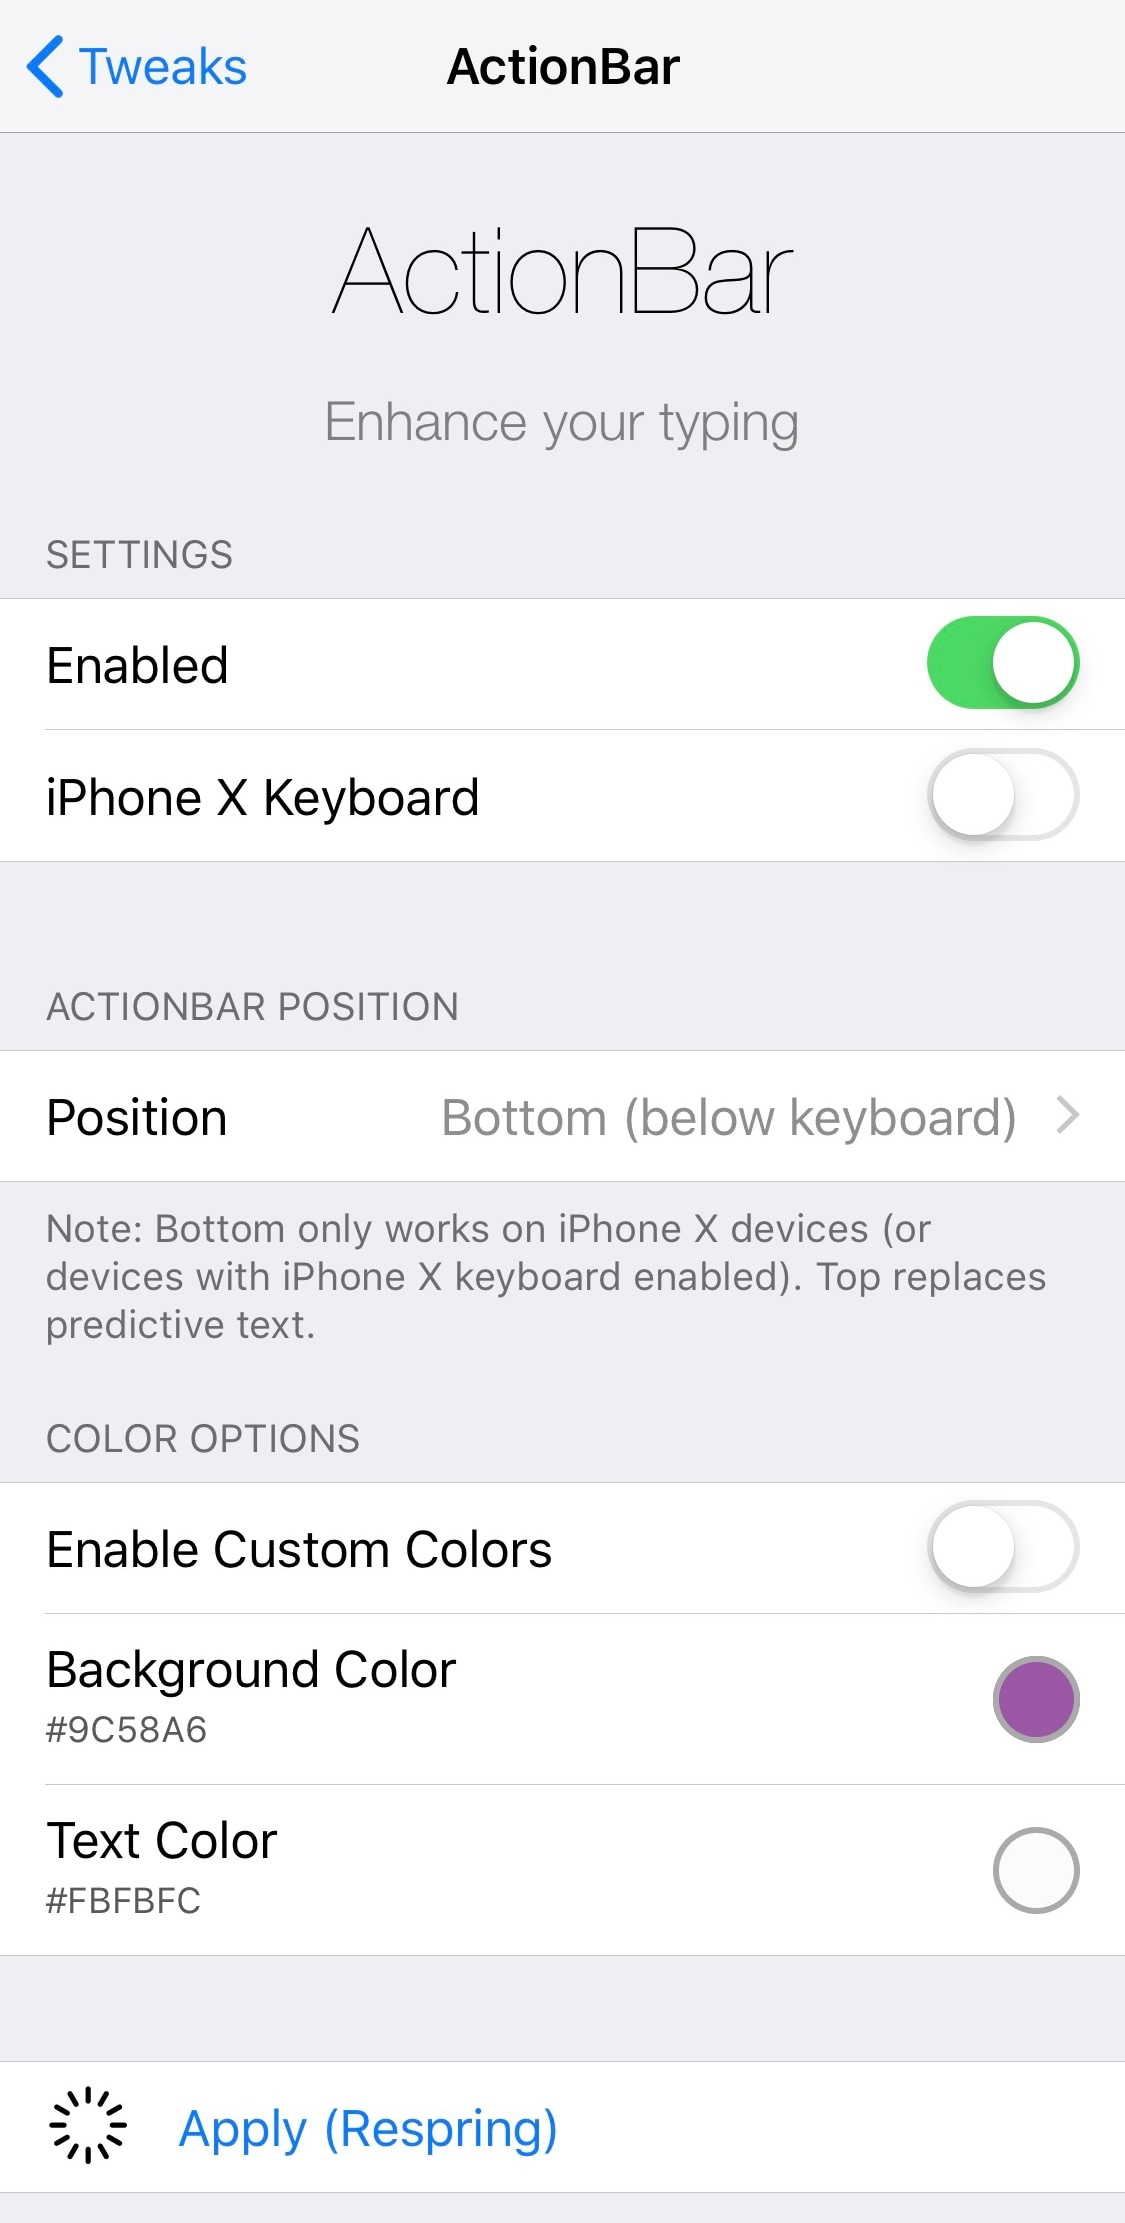 Actionbar Brings A Modernized Text Editing Interface To